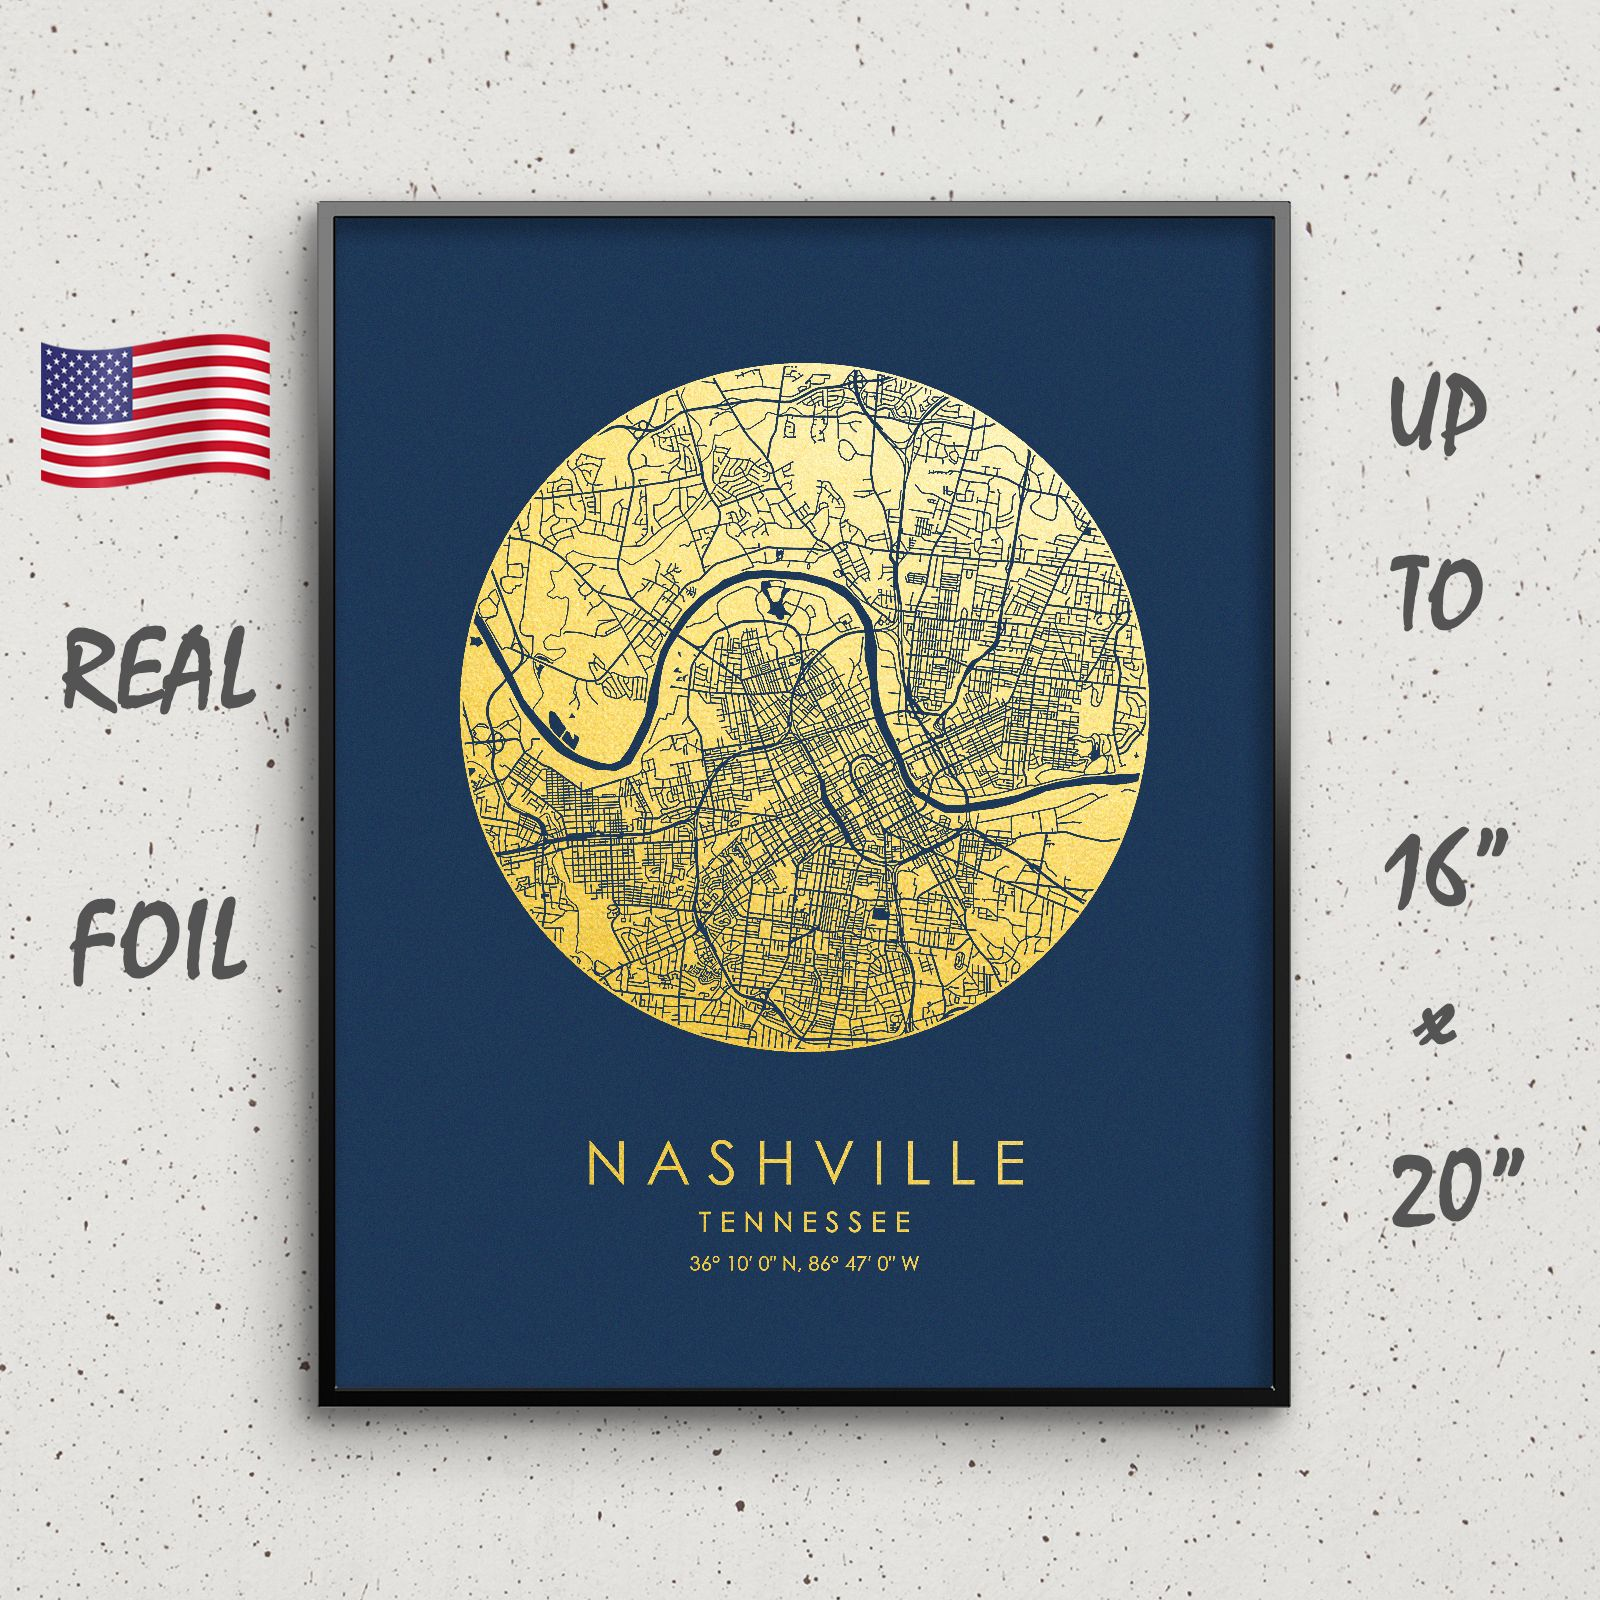 Nashville City map print for wall art decor by GoldenGraphy United